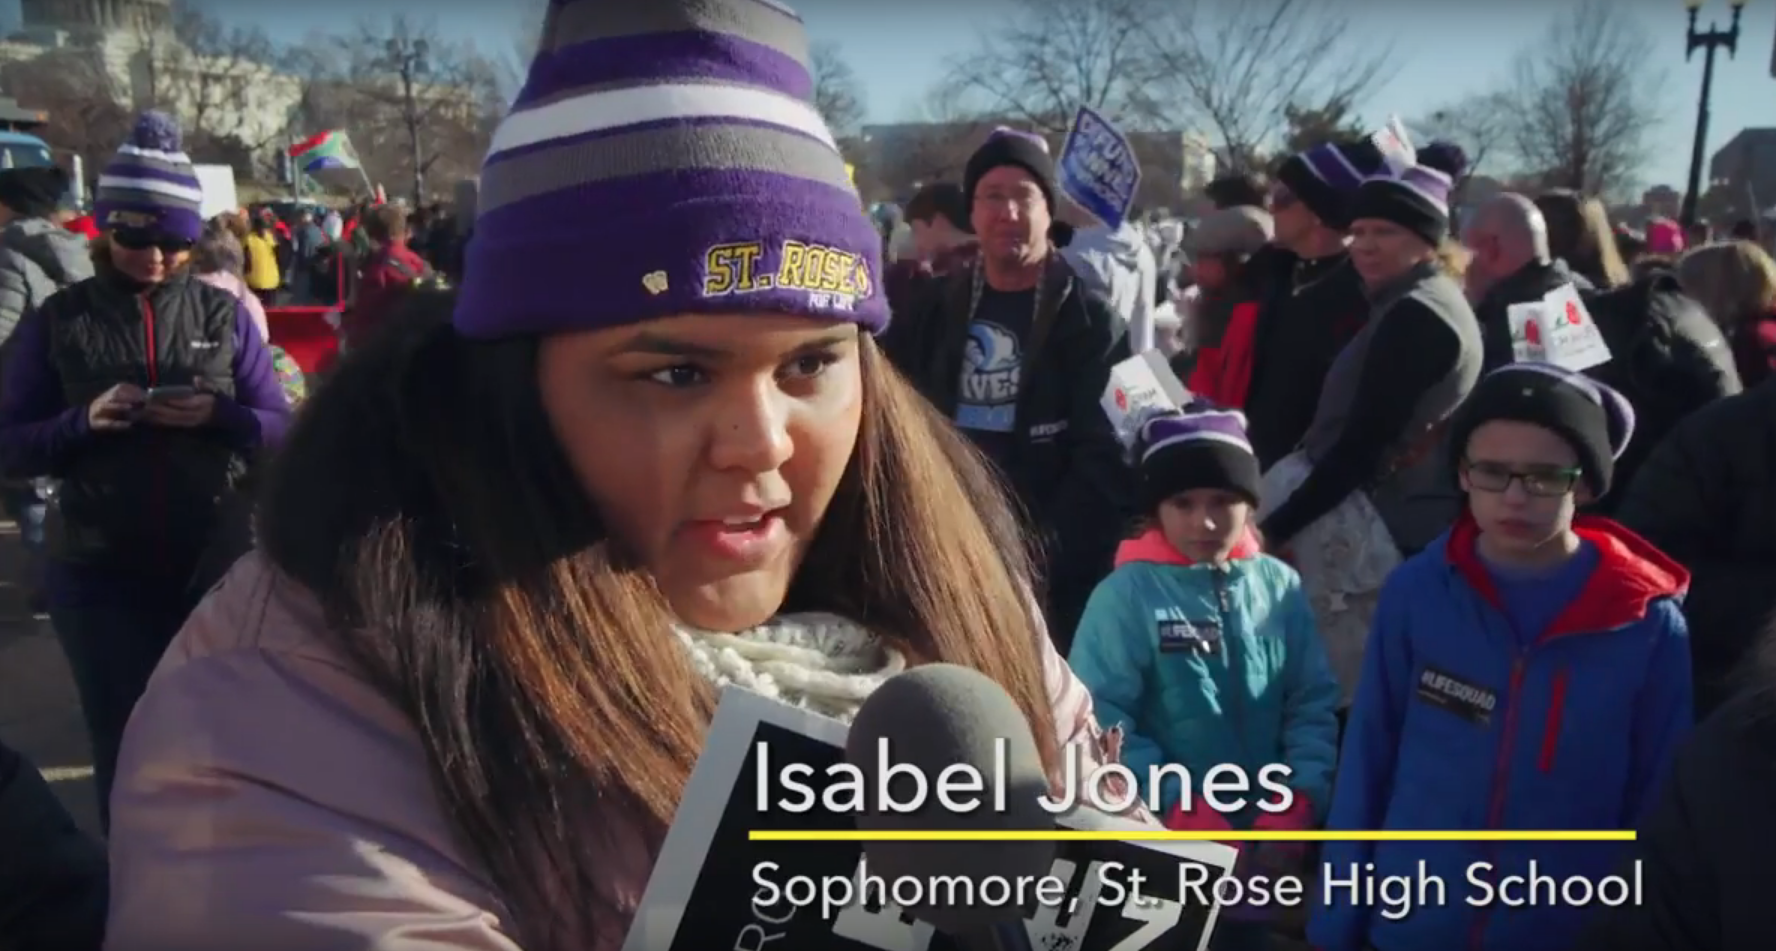 St. Rose featured on NJ's March for Life